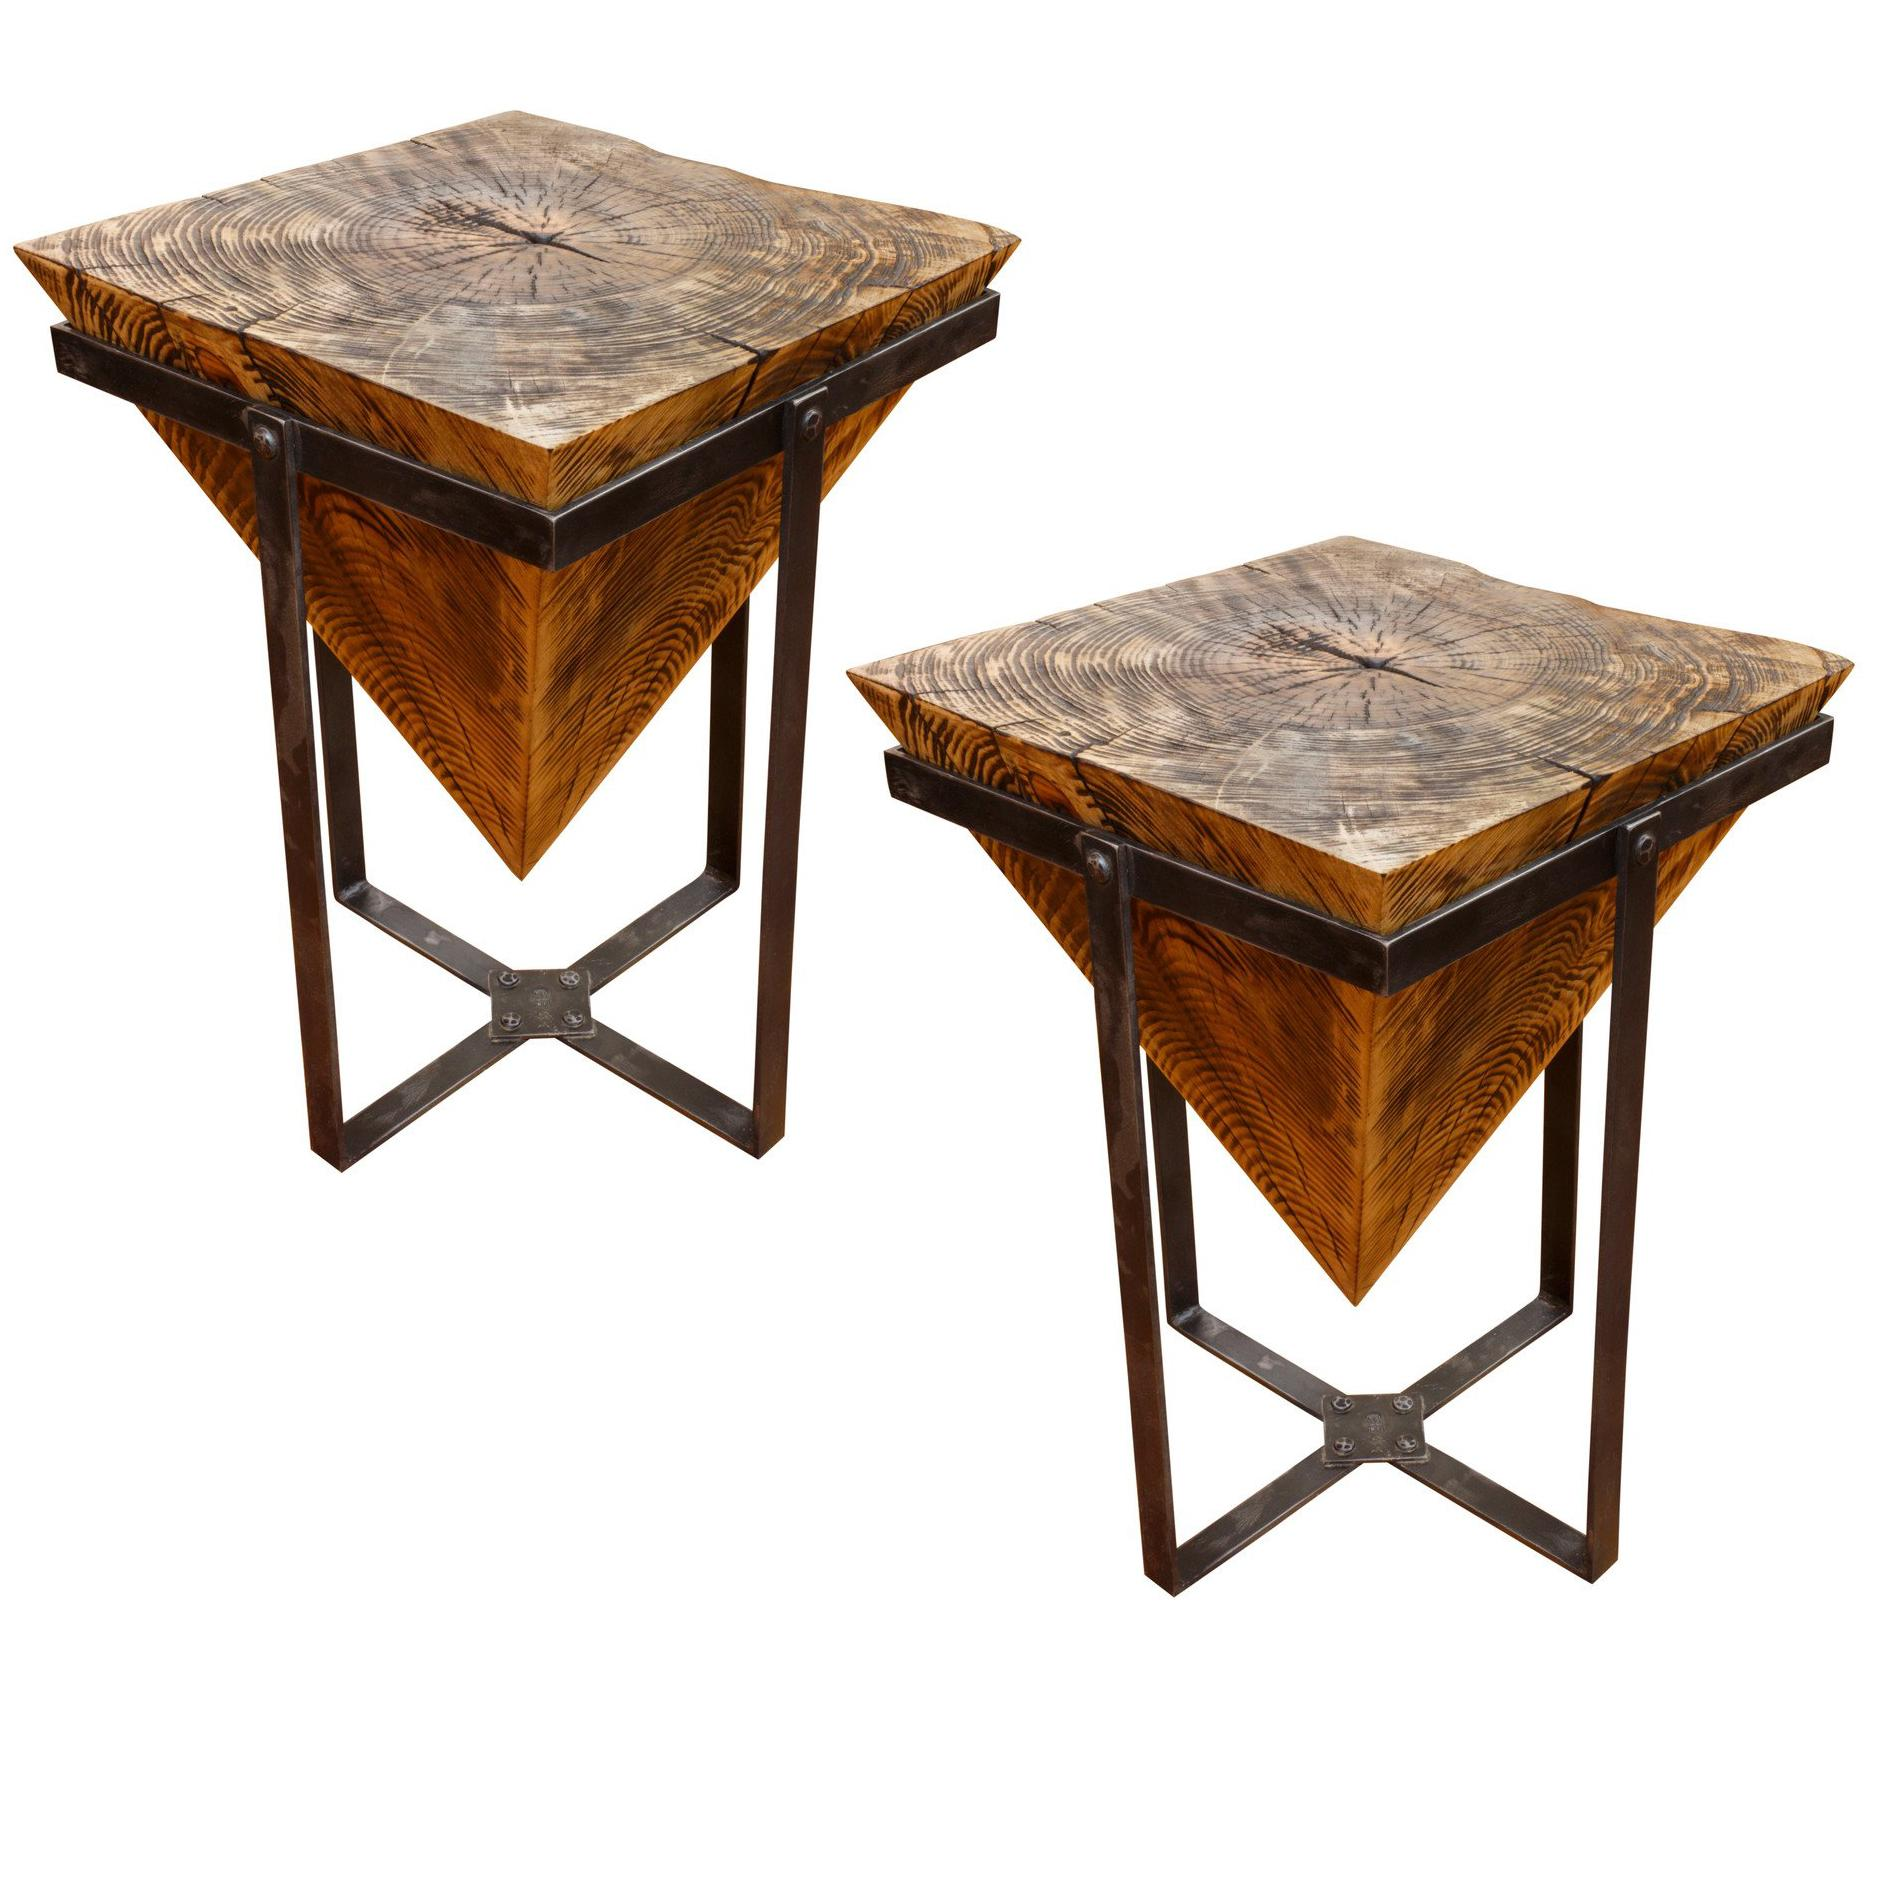 pine pyramid side tables for master mirrored accent table glass entry black wood coffee pottery barn bath white bedside with drawers gold and silver sofa reviews mahogany nest